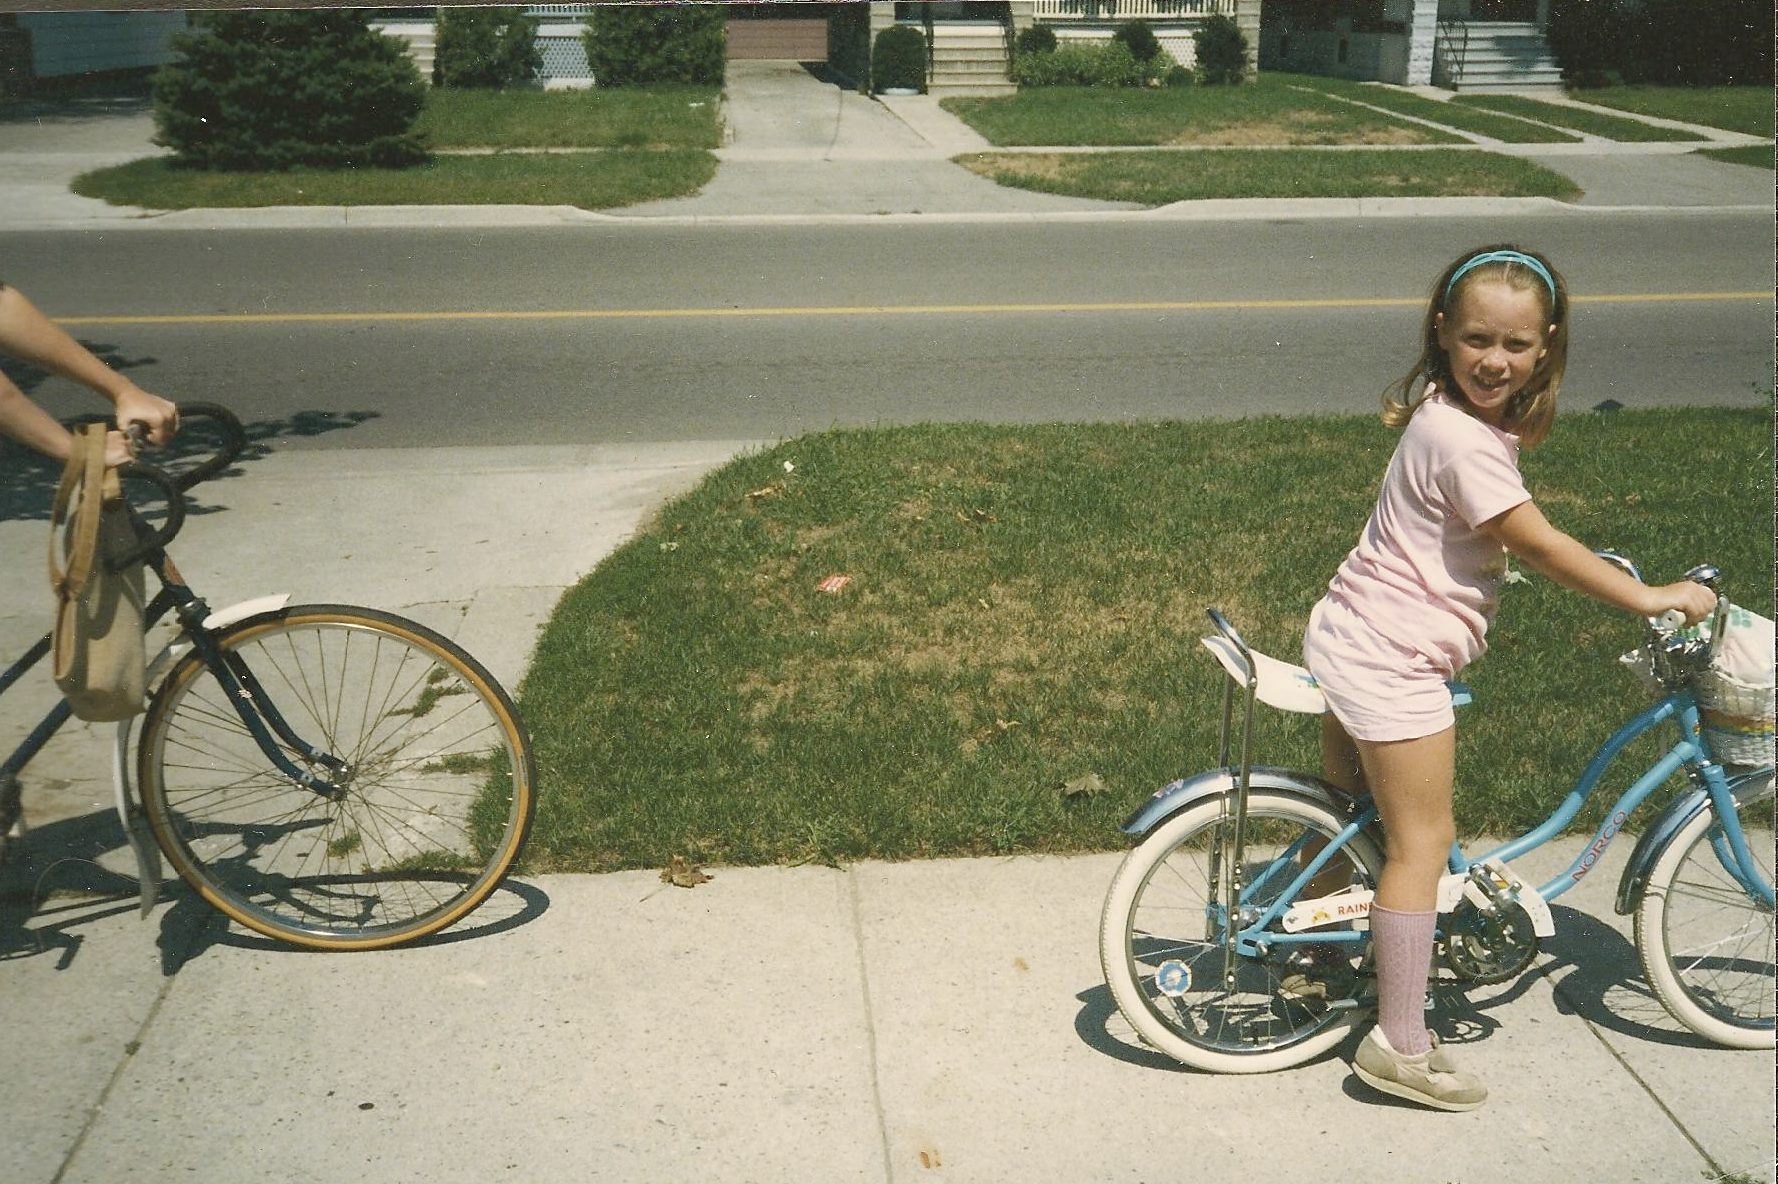 A kid sits on a bicycle in a suburban neighbourhood in the 1980s.